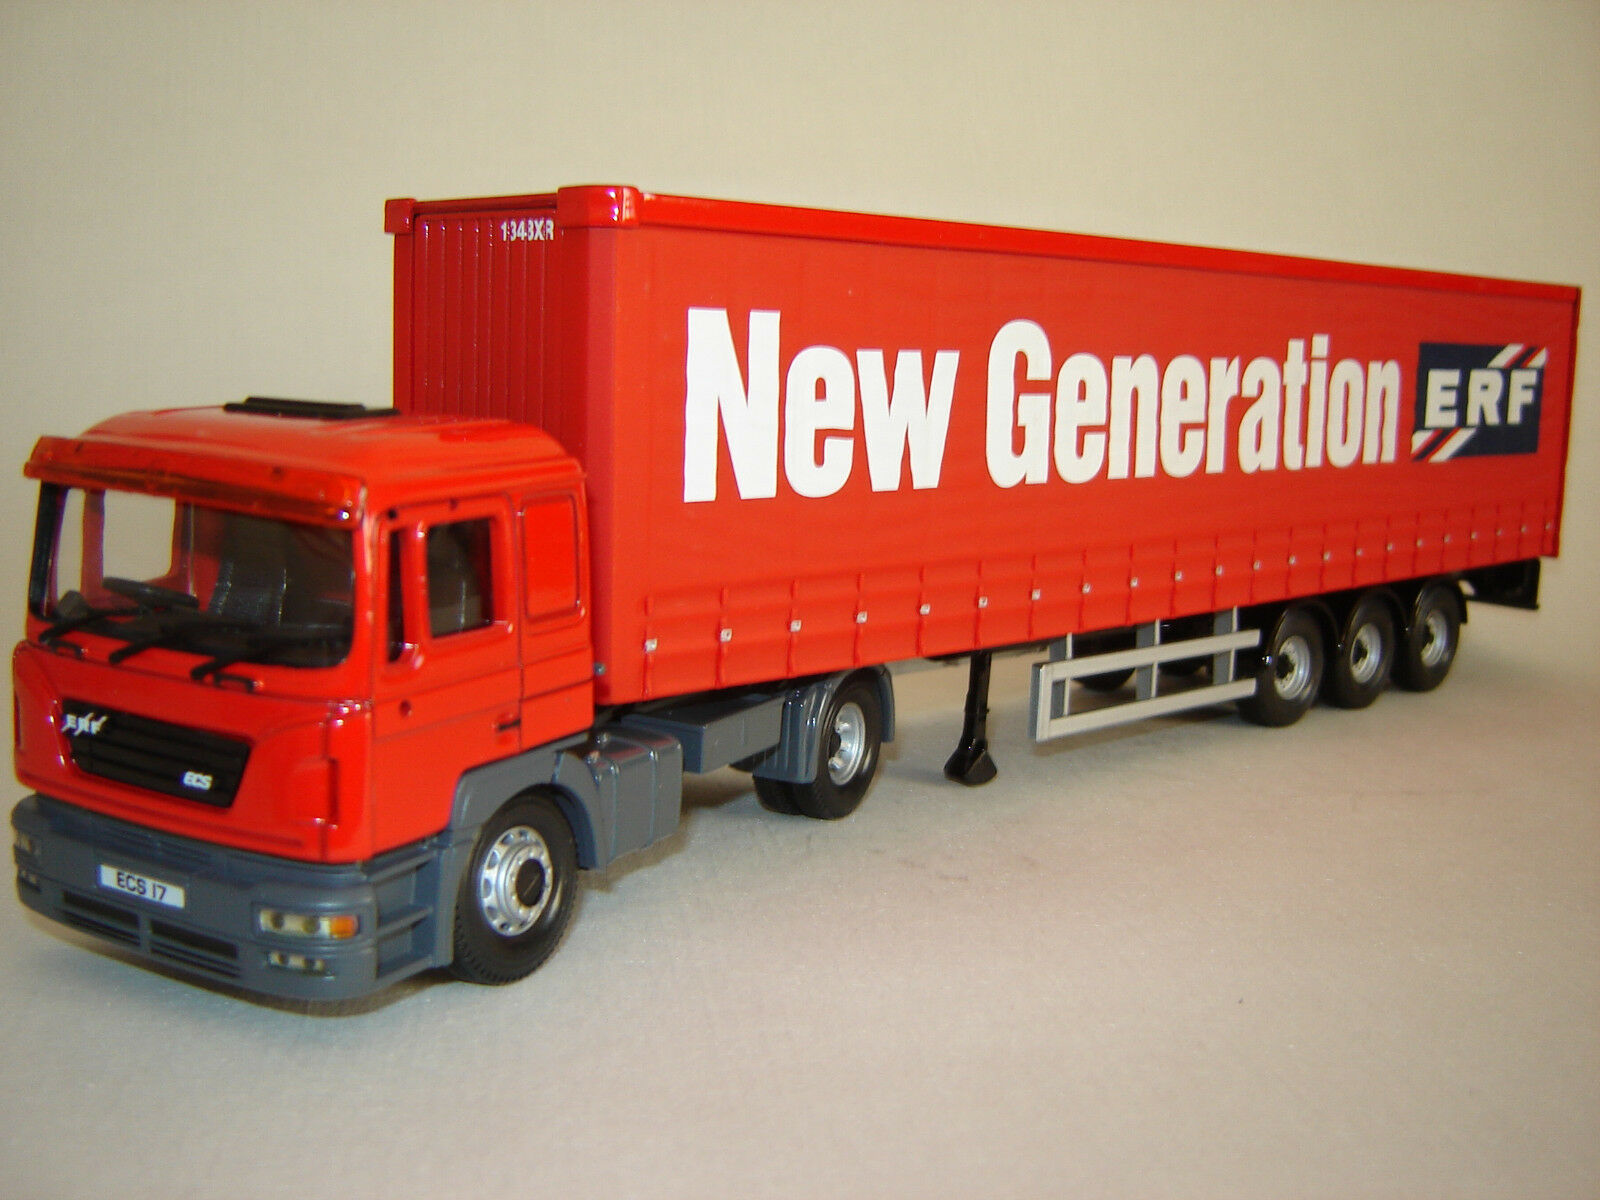 1 50 ERF ECS Curtainside - The new Generation 2000 - Corgi CC12701